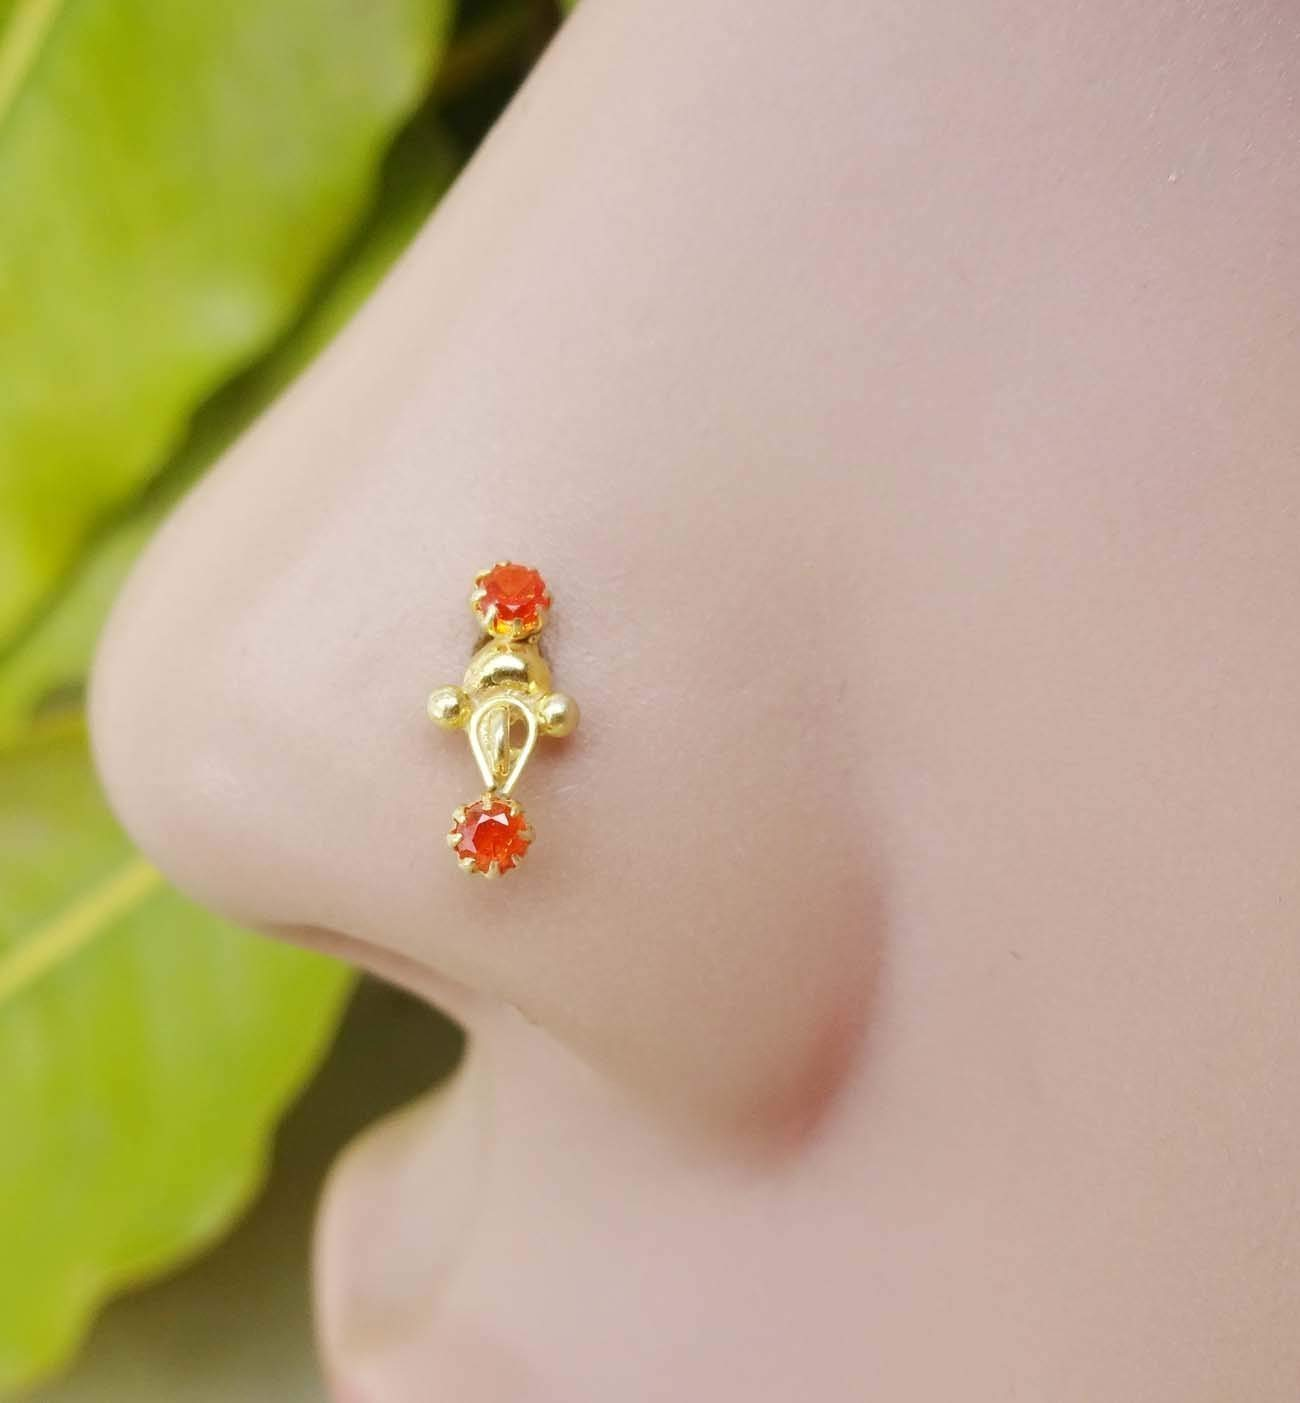 Cheap Tiny Stud Nose Ring Find Tiny Stud Nose Ring Deals On Line At